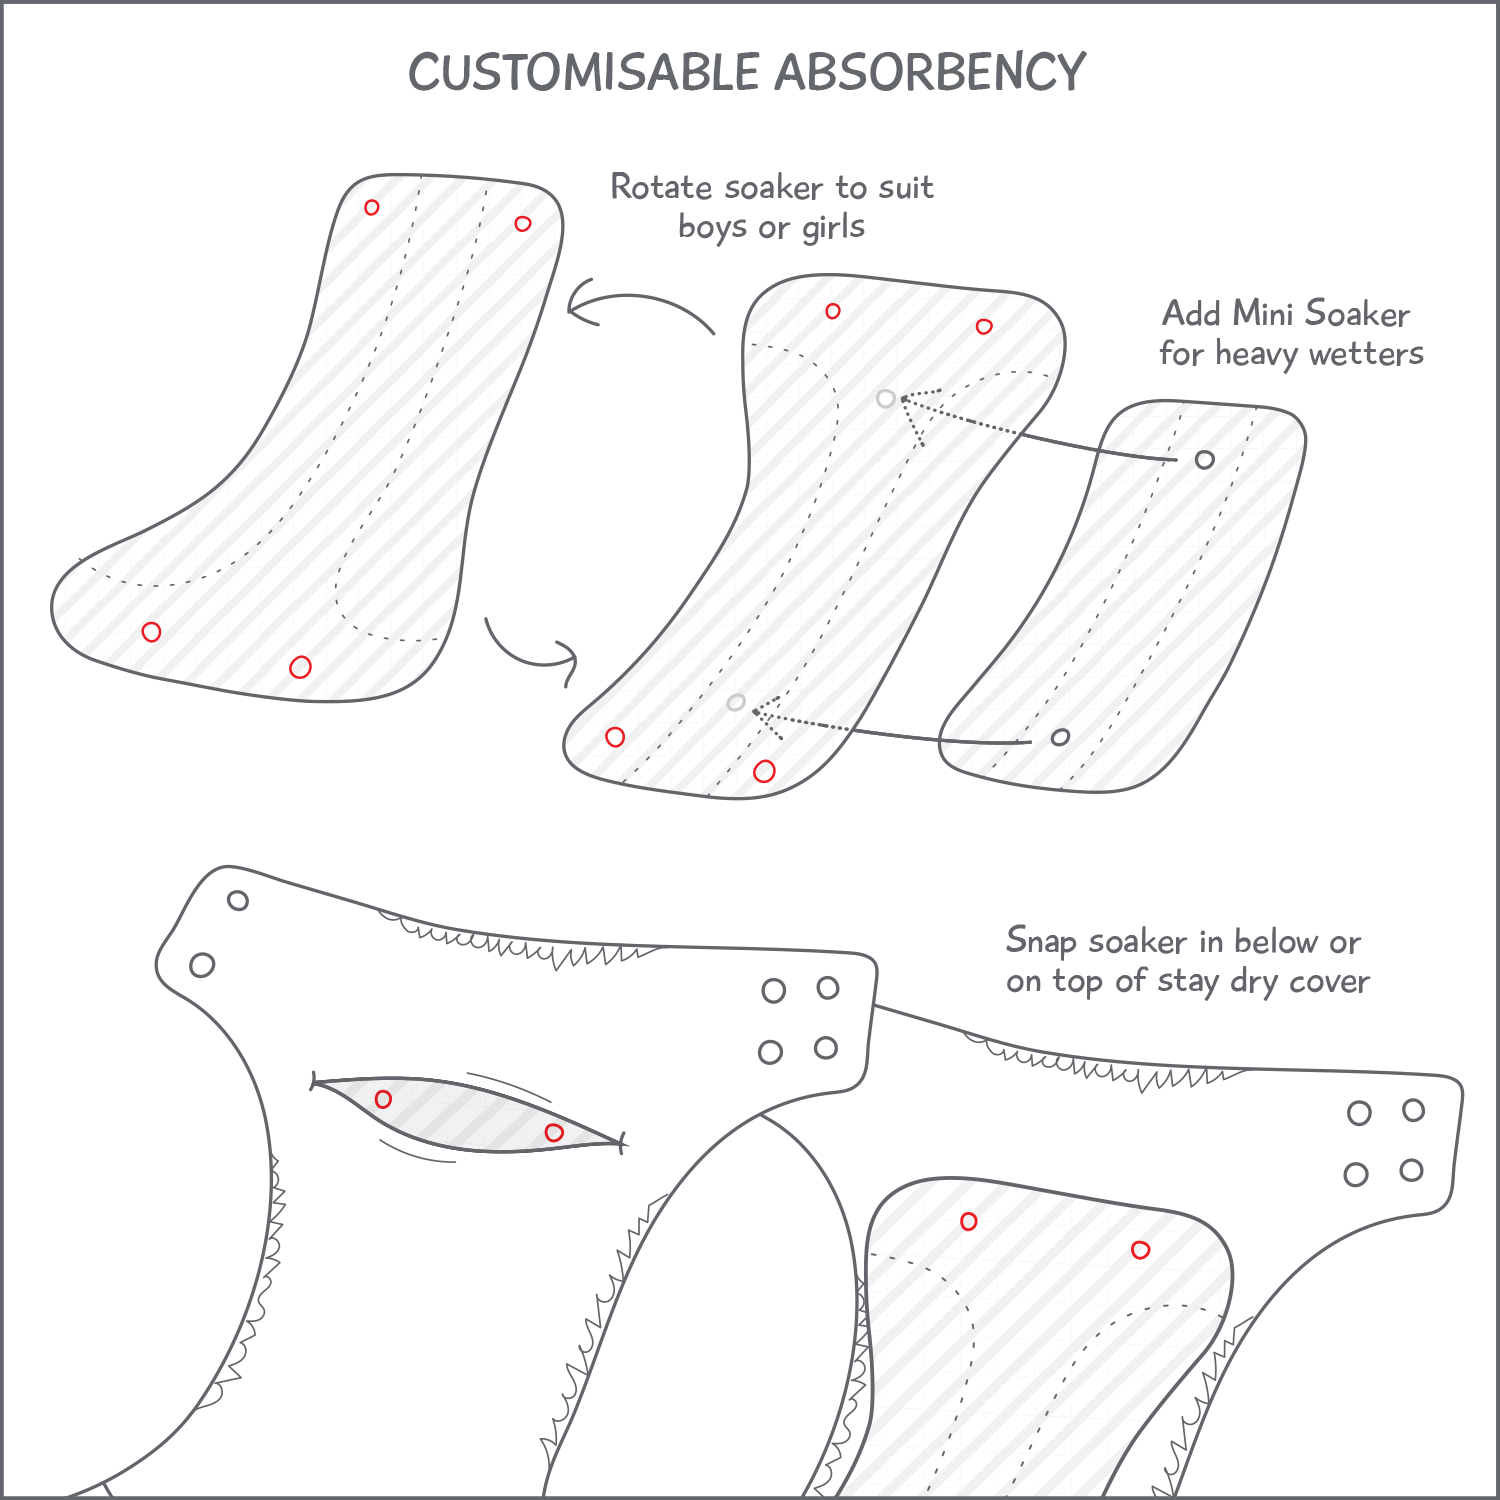 OMNIA - Customisable Absorbency